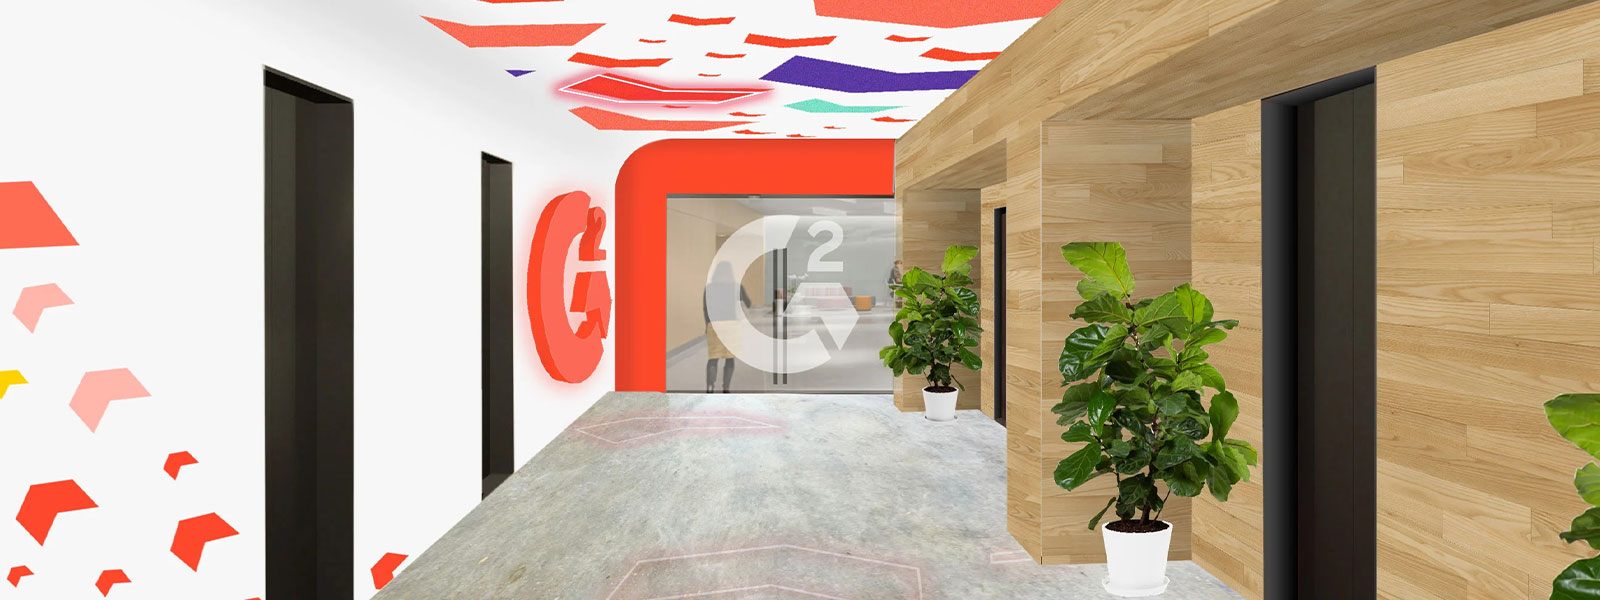 Hallway enhanced by environmental graphic design, interactive arrows on walls and ceiling